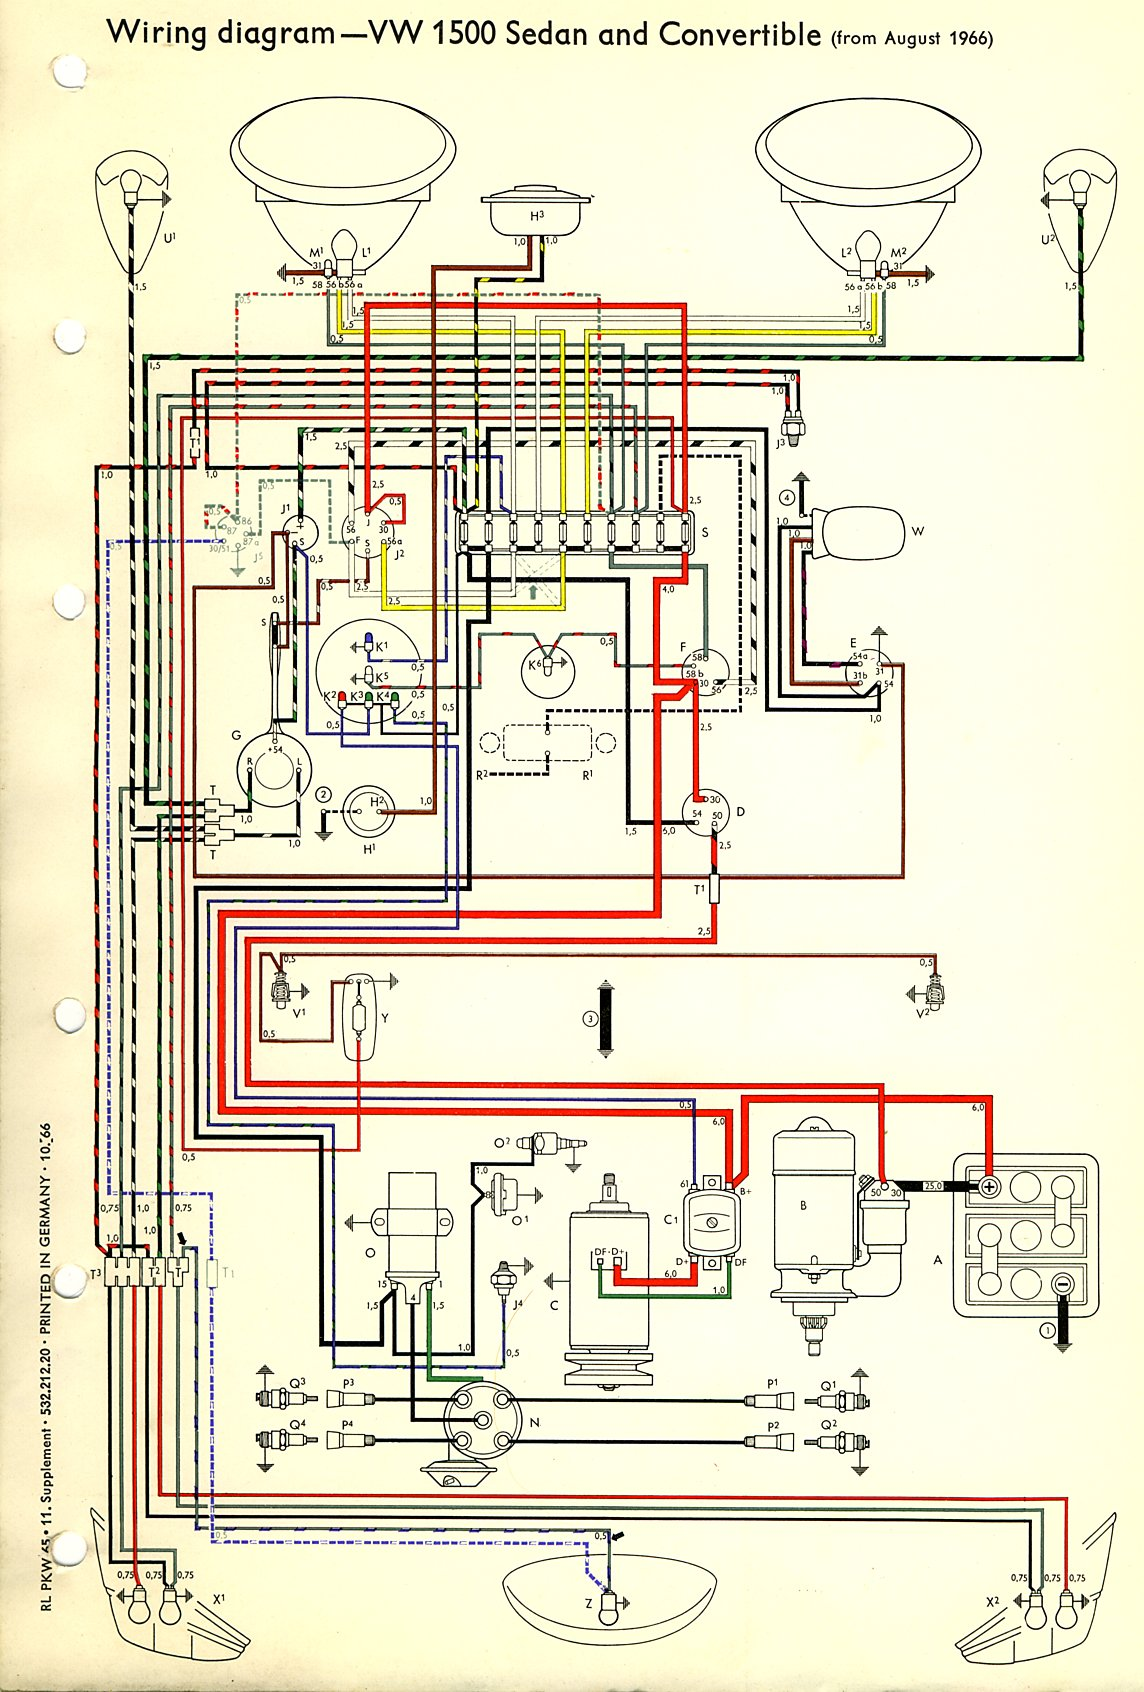 bug_67 1967 beetle wiring diagram thegoldenbug com VW Beetle Fuse Box Diagram at reclaimingppi.co